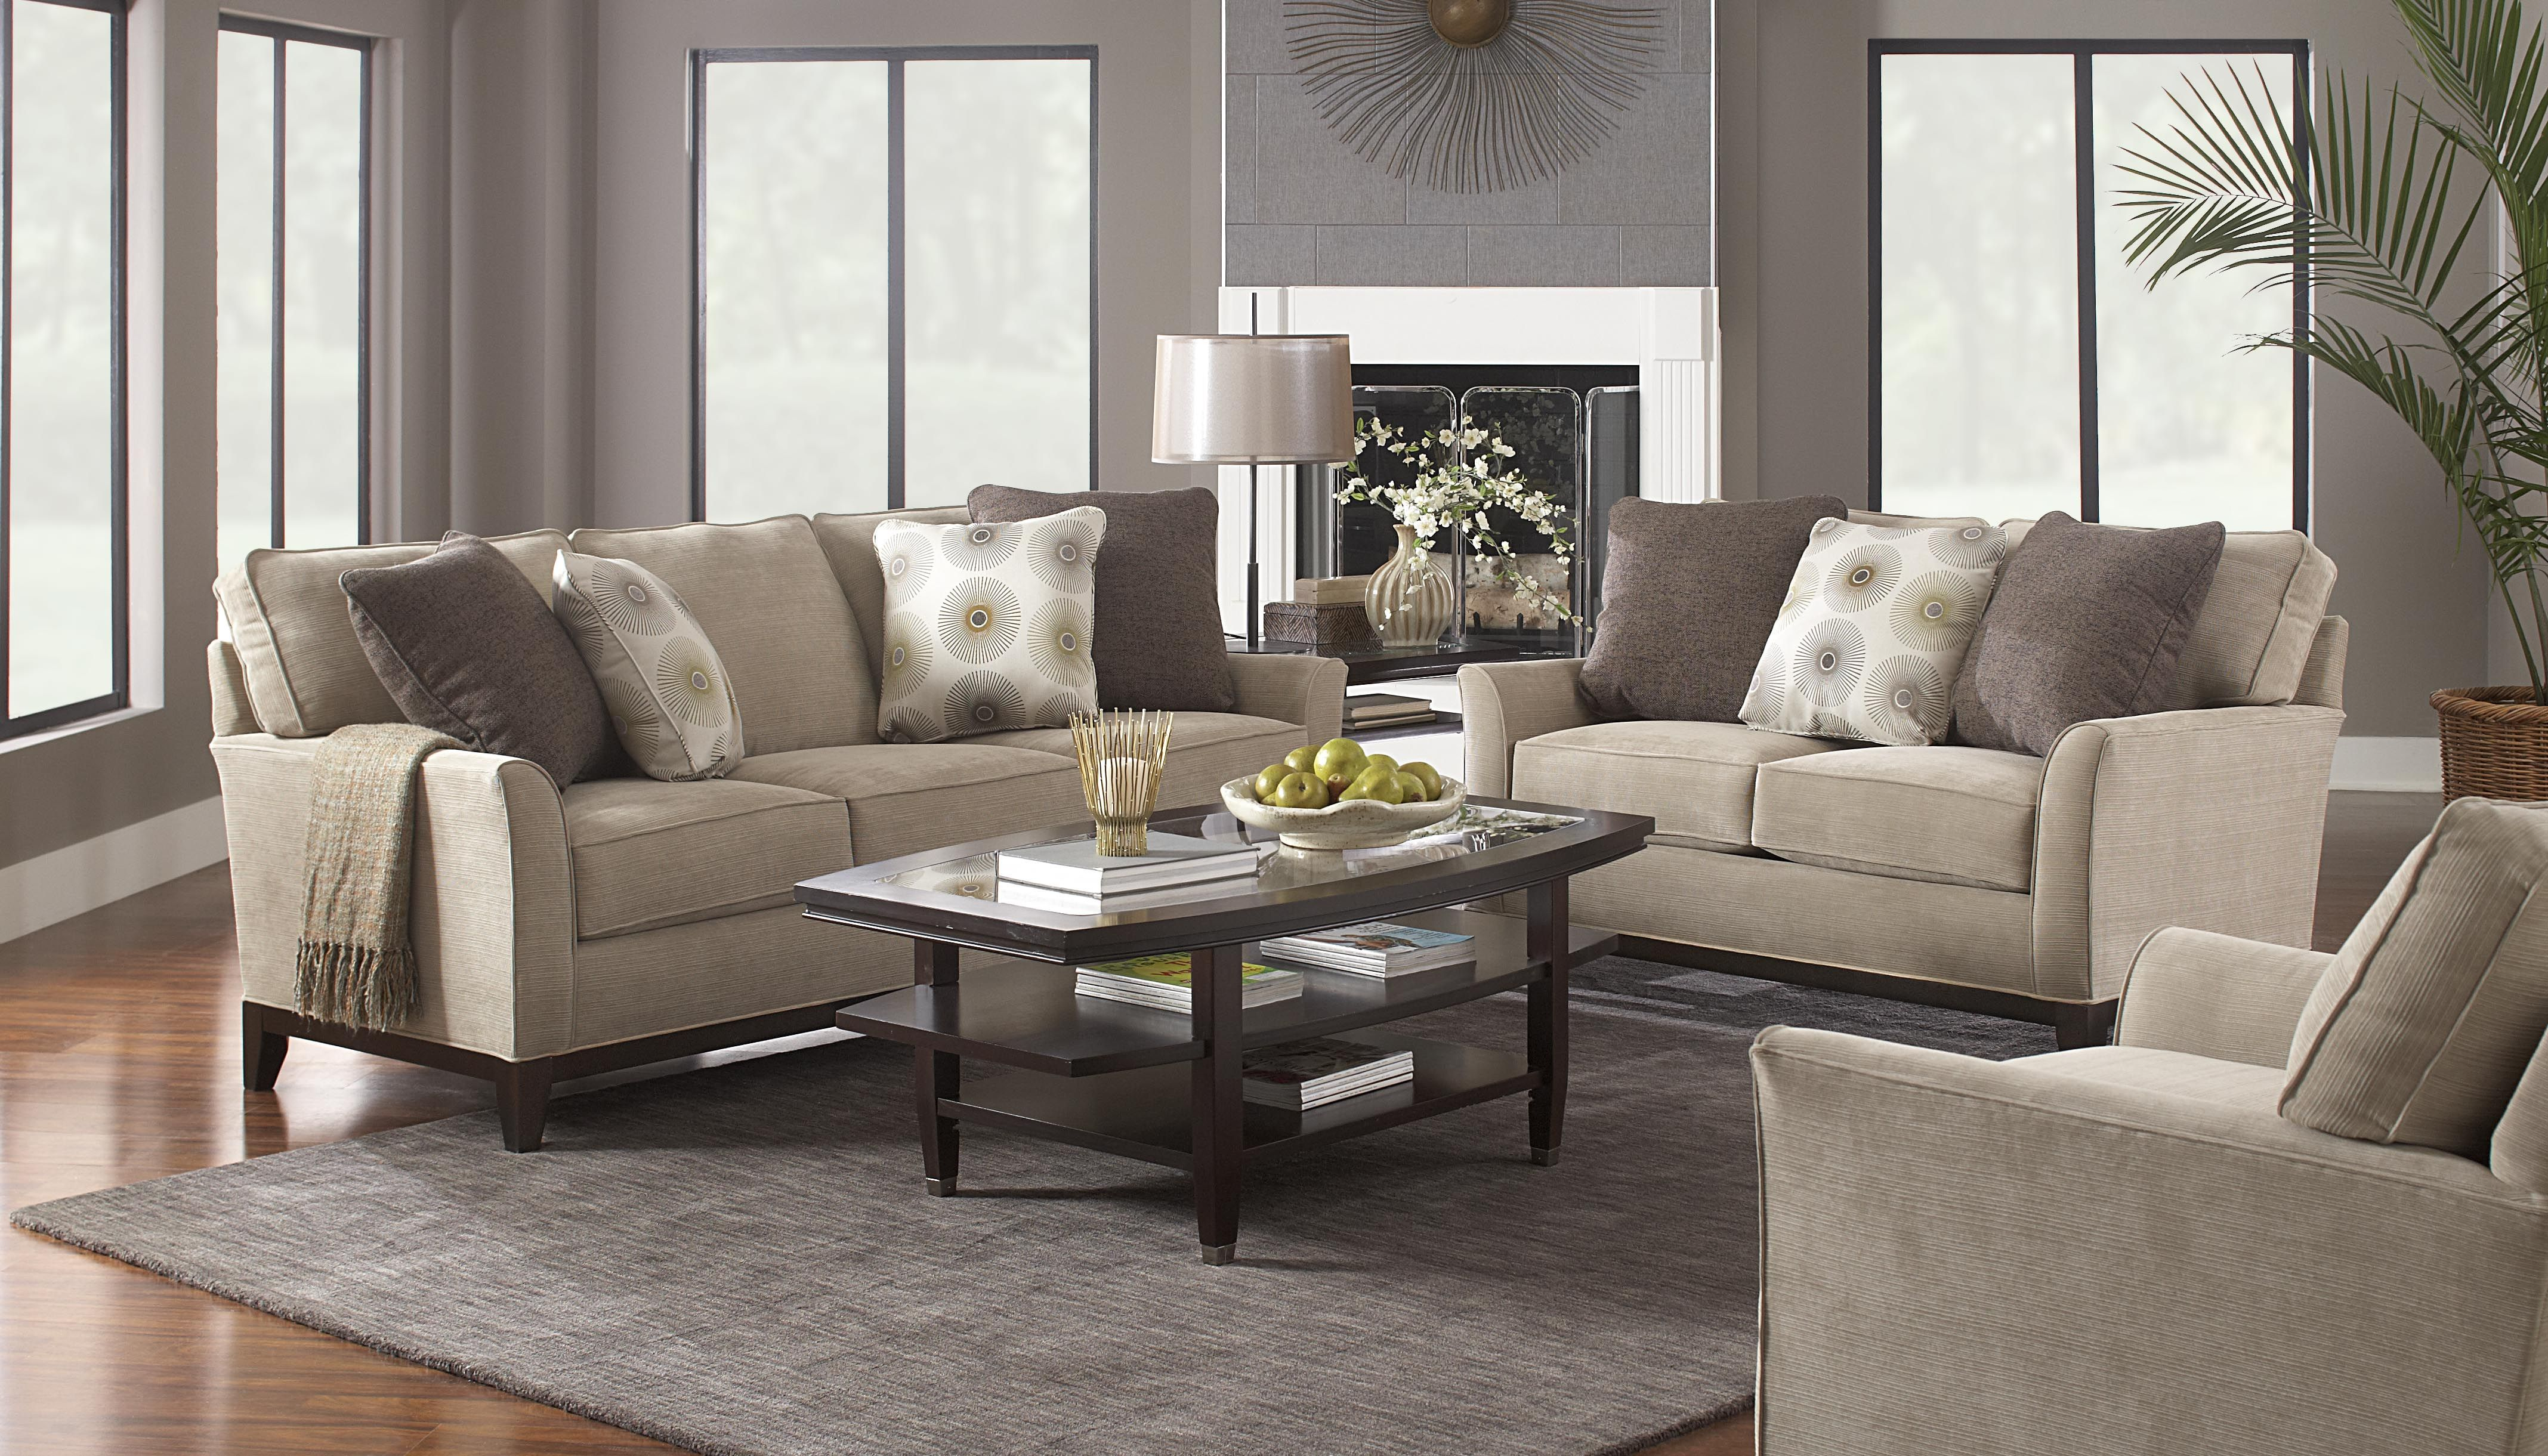 picture of Alexandria Beige 5 Pc Living Room from Living Room Sets